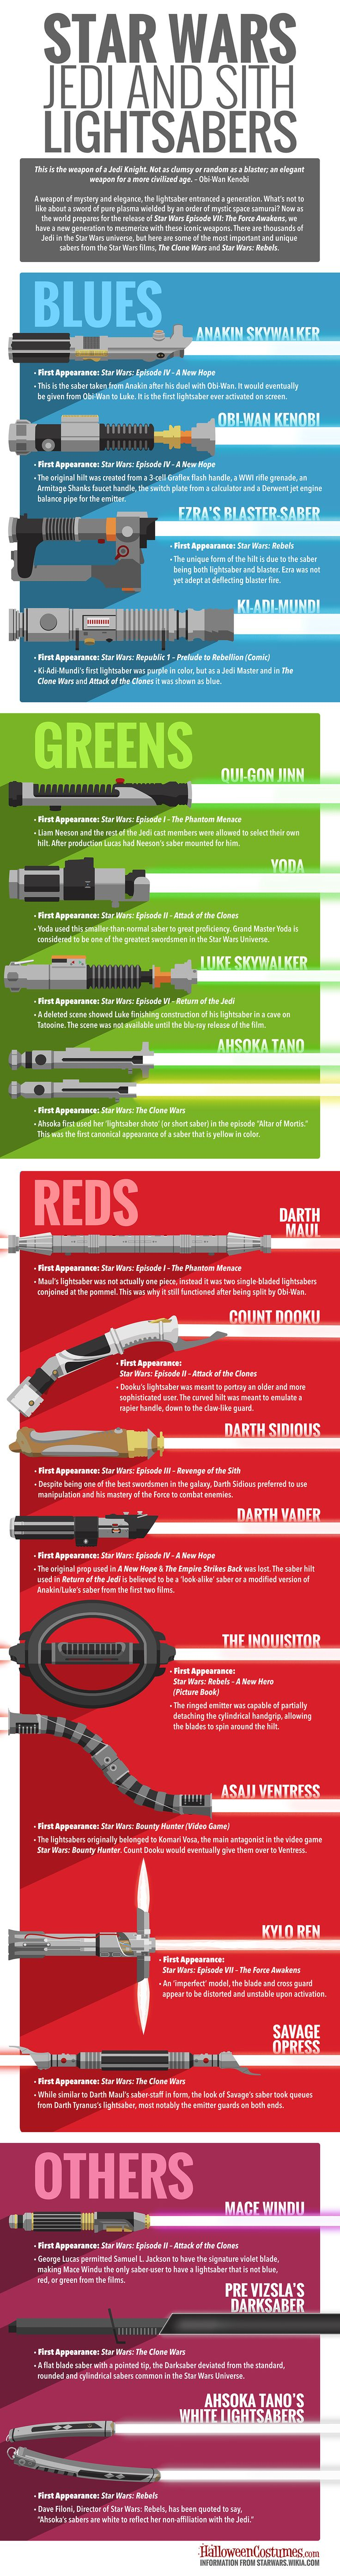 Star Wars Lightsabers #Infographic